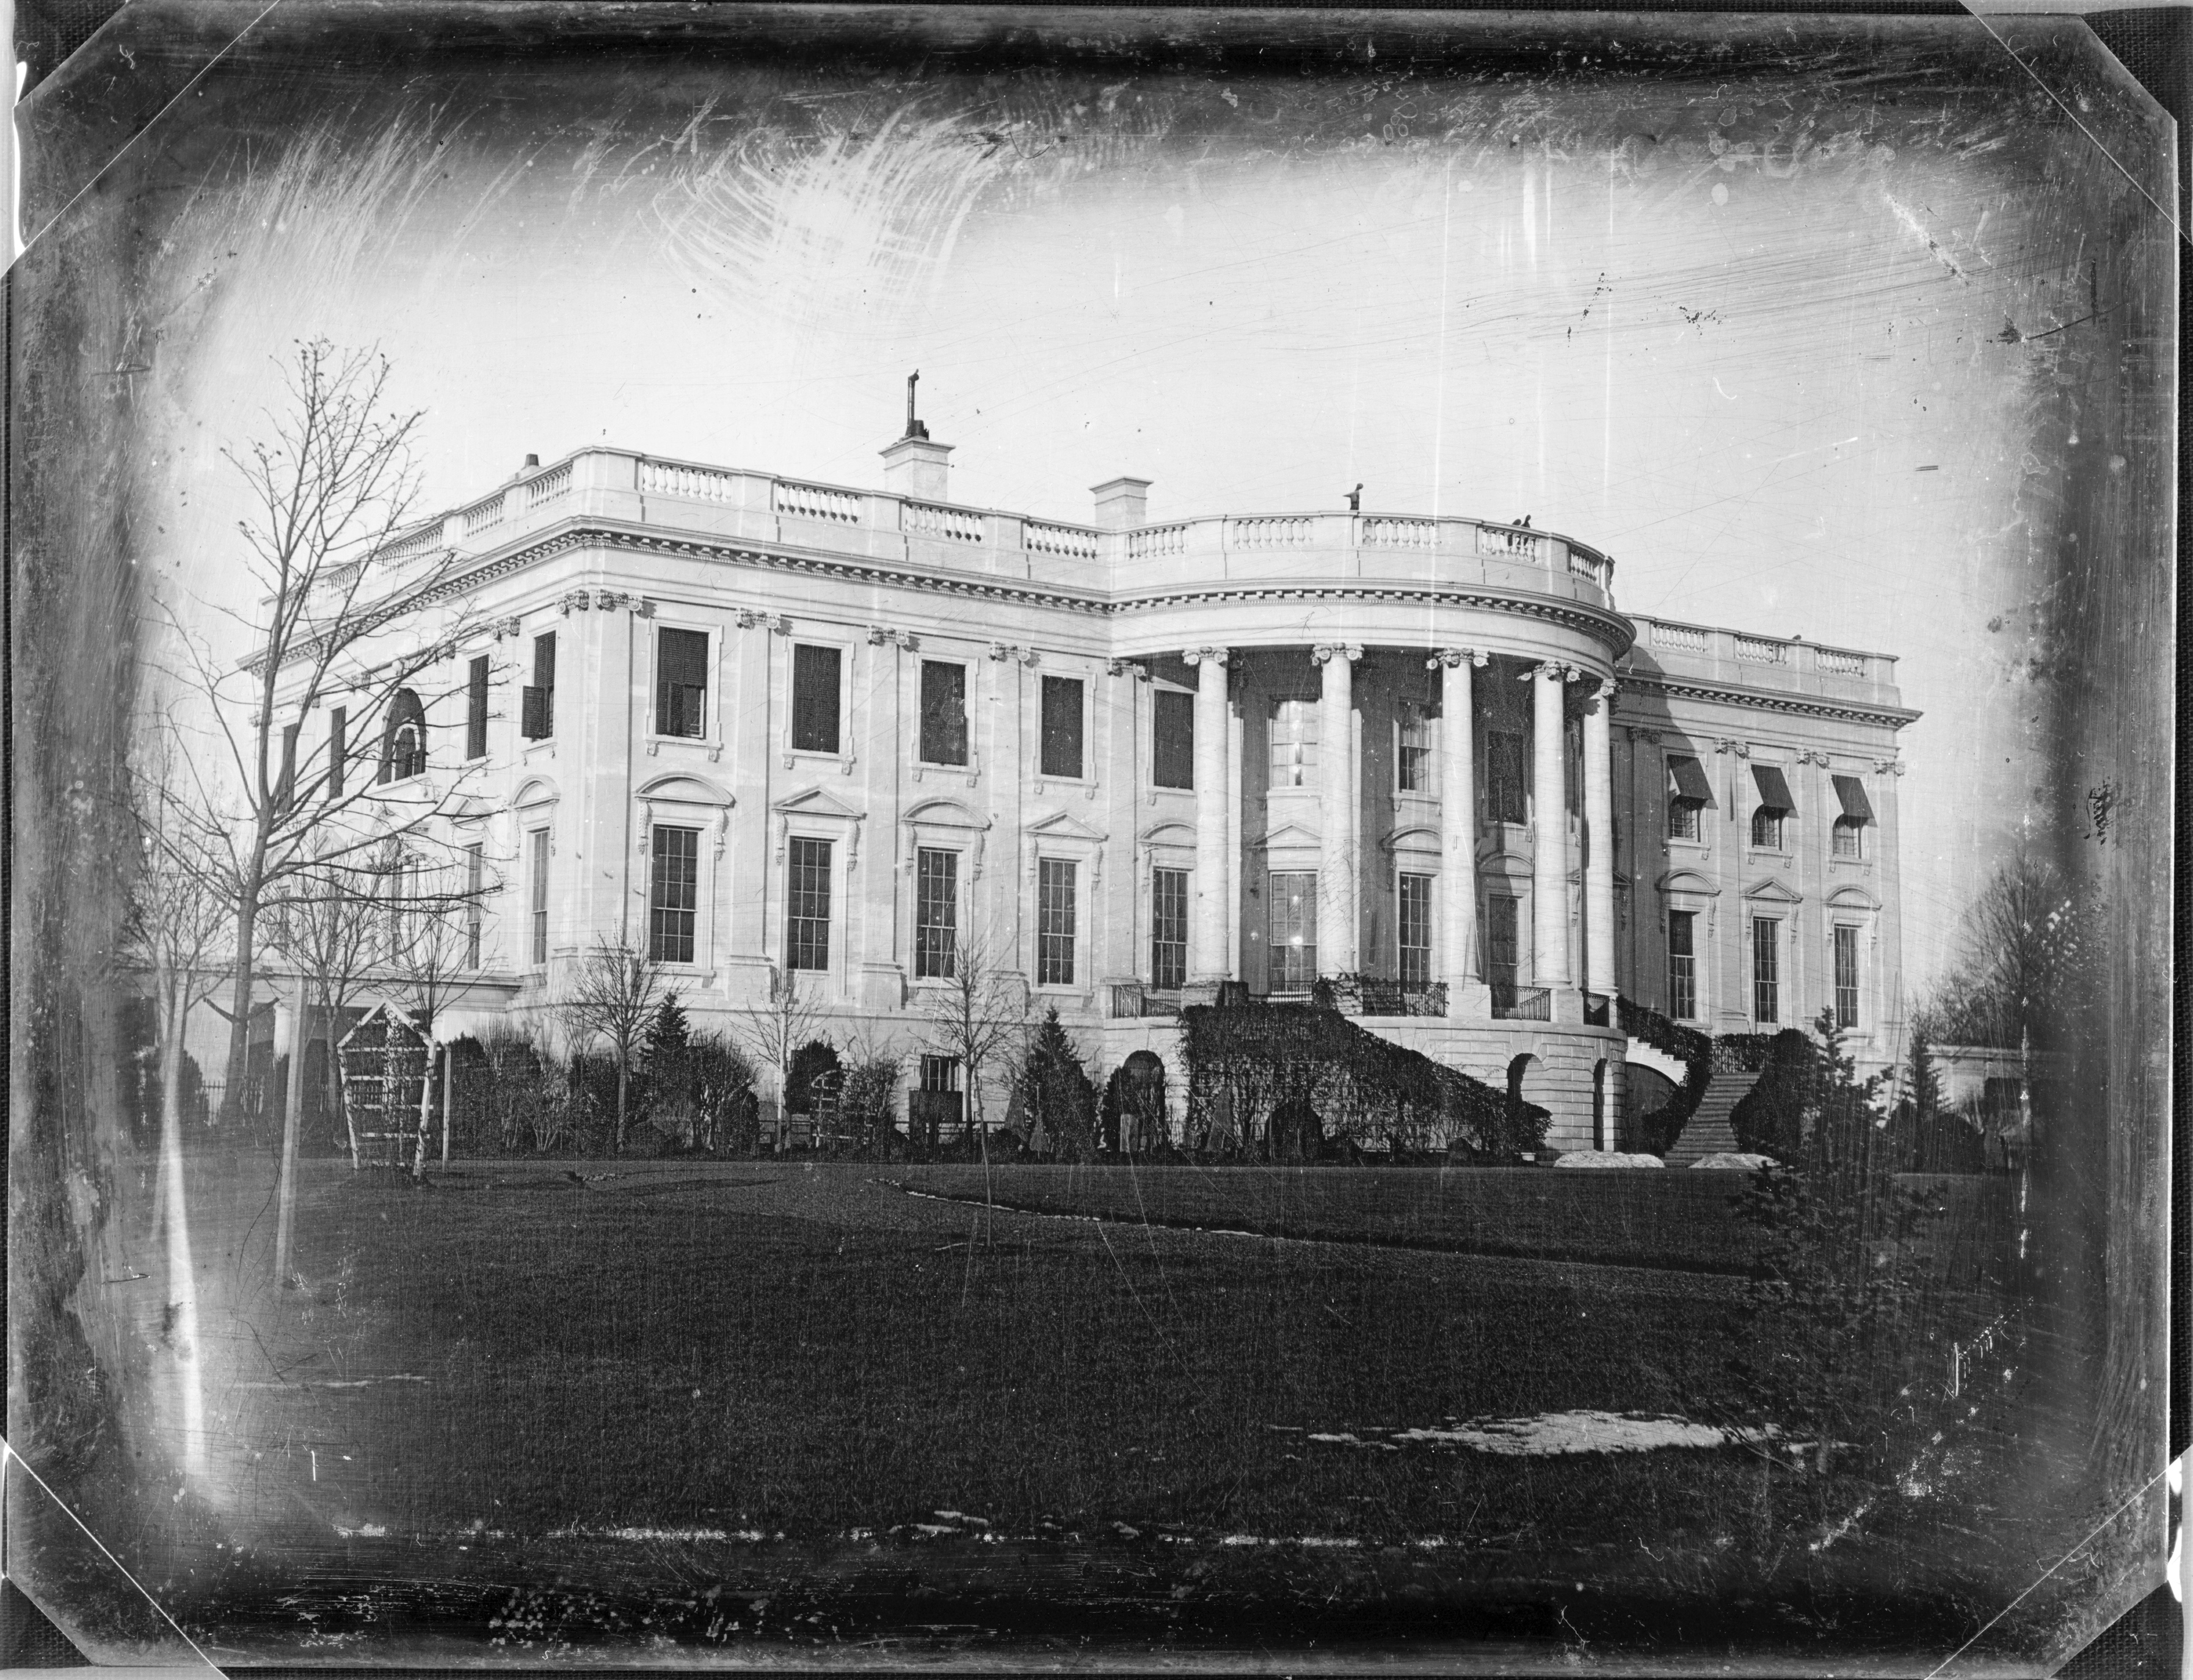 White House as seen in 1846 photo, about seven years after Joseph Smith visited U.S. President Martin Van Buren there.